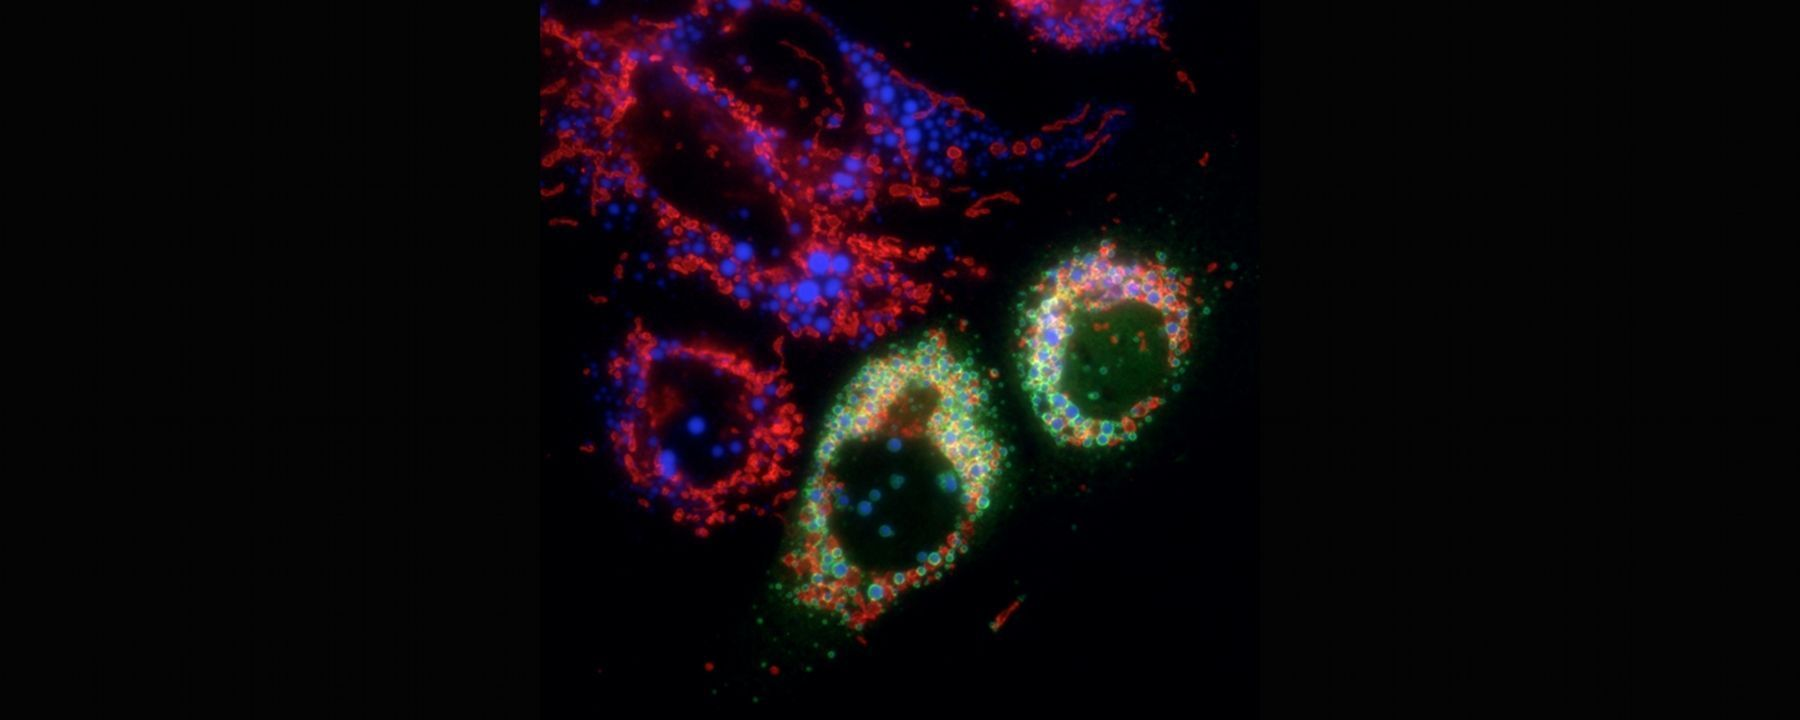 Lipid Droplets Are Intracellular Bacteria-Fighting Machines